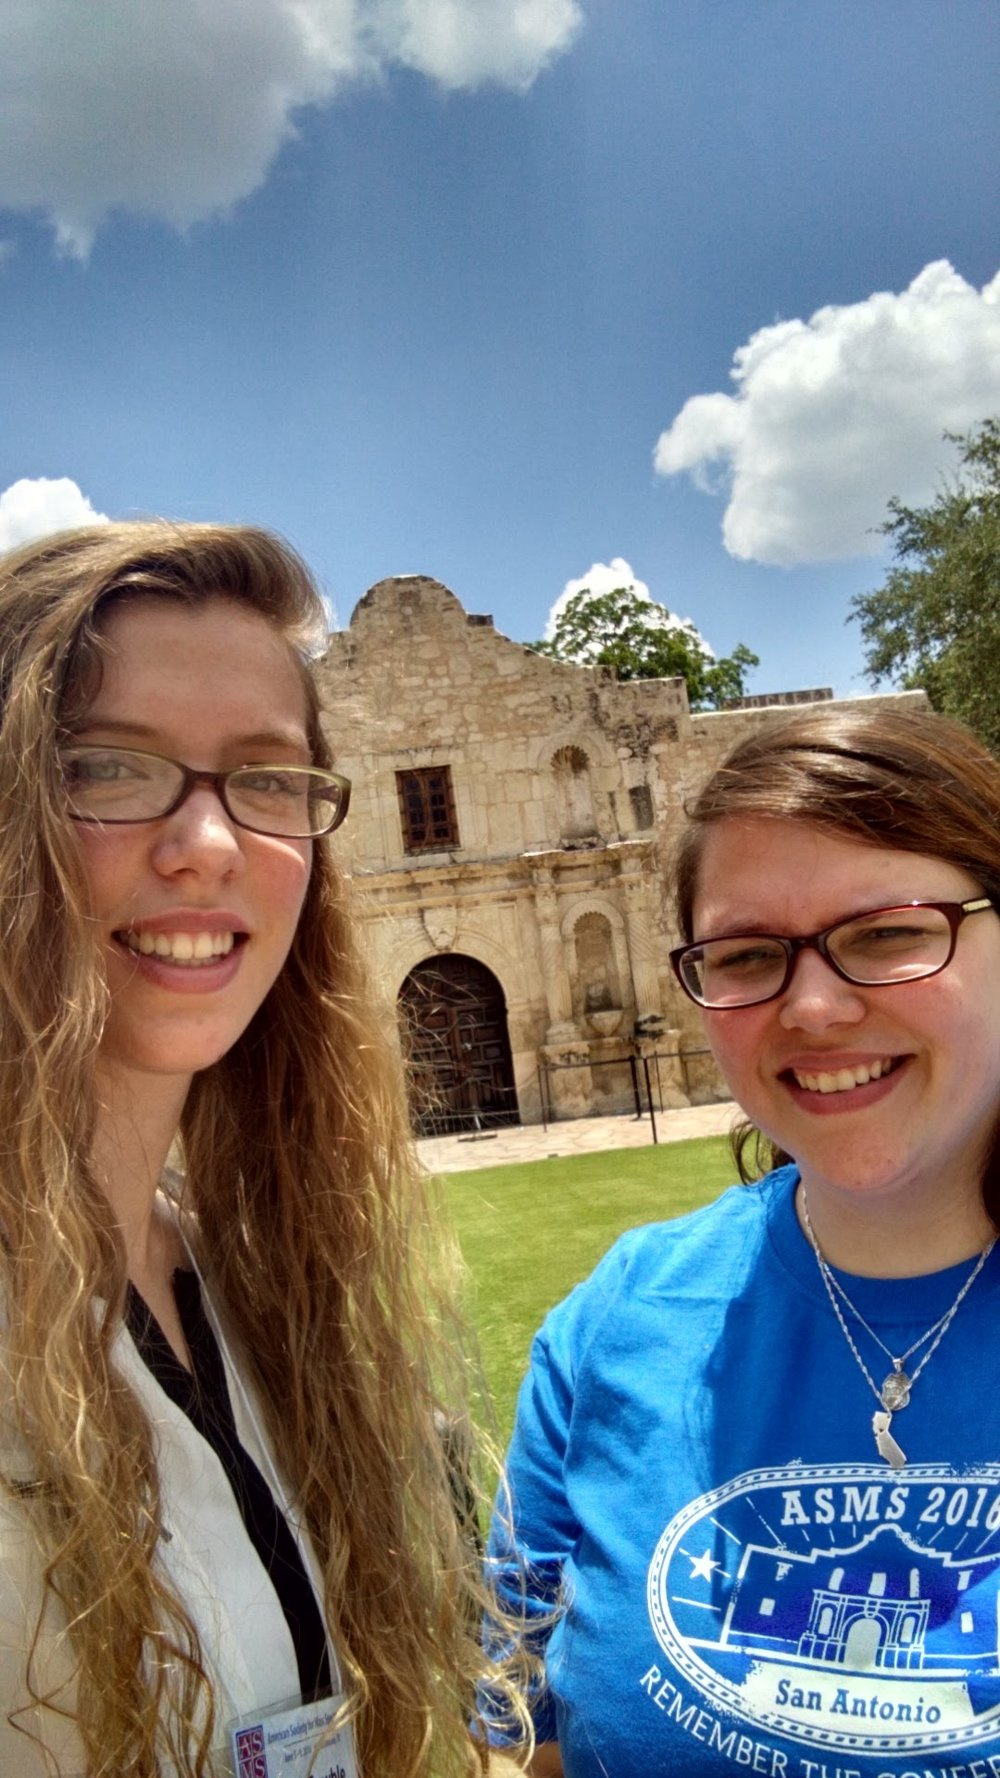 Kristen and Justine visit The Alamo.